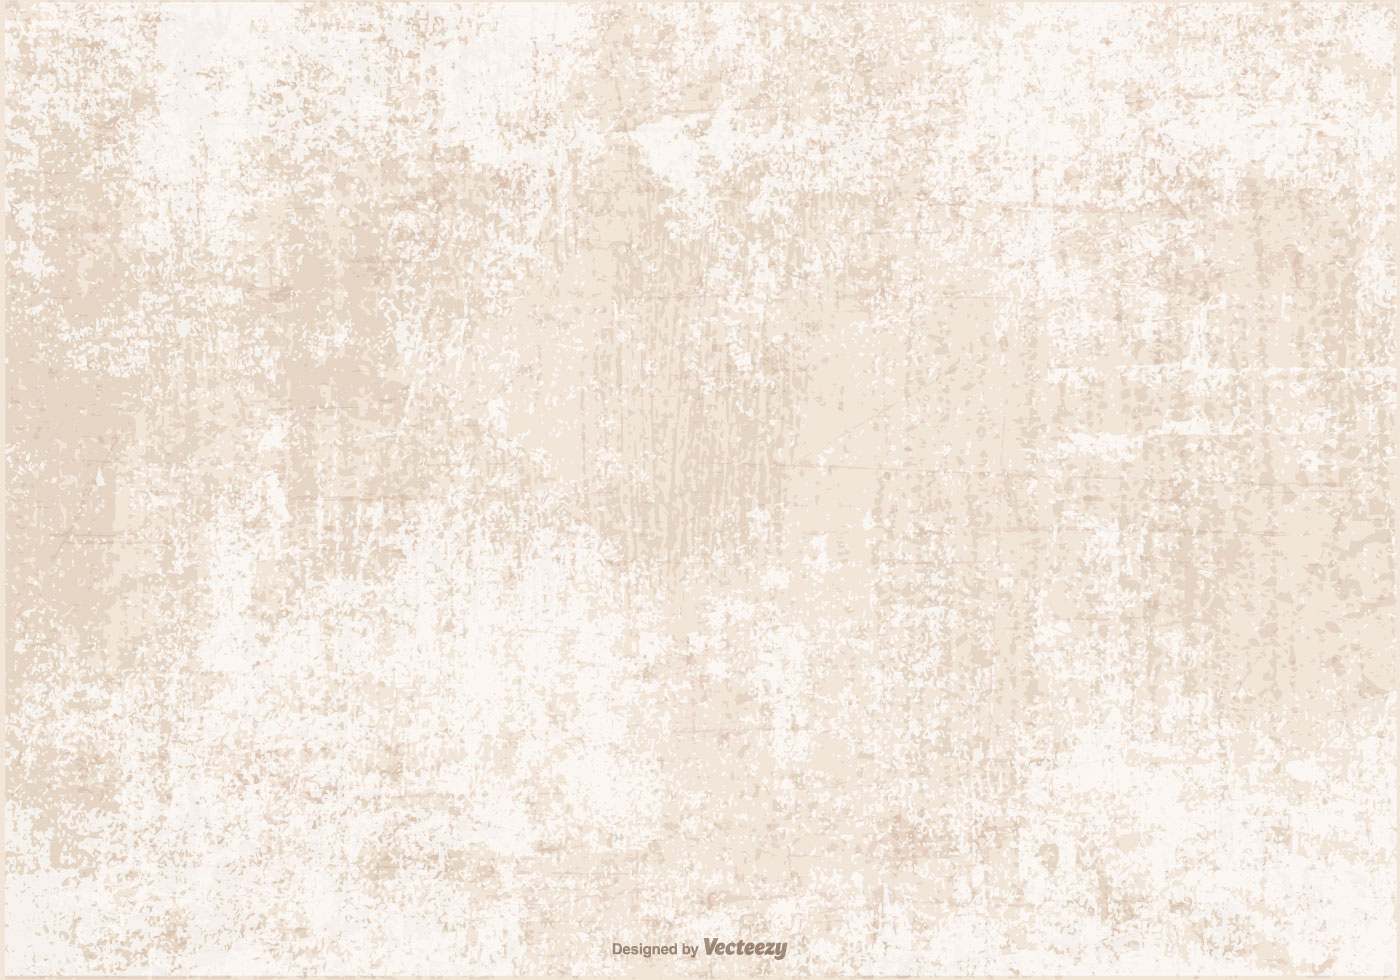 Grunge Texture Vector Background - Download Free Vector ...